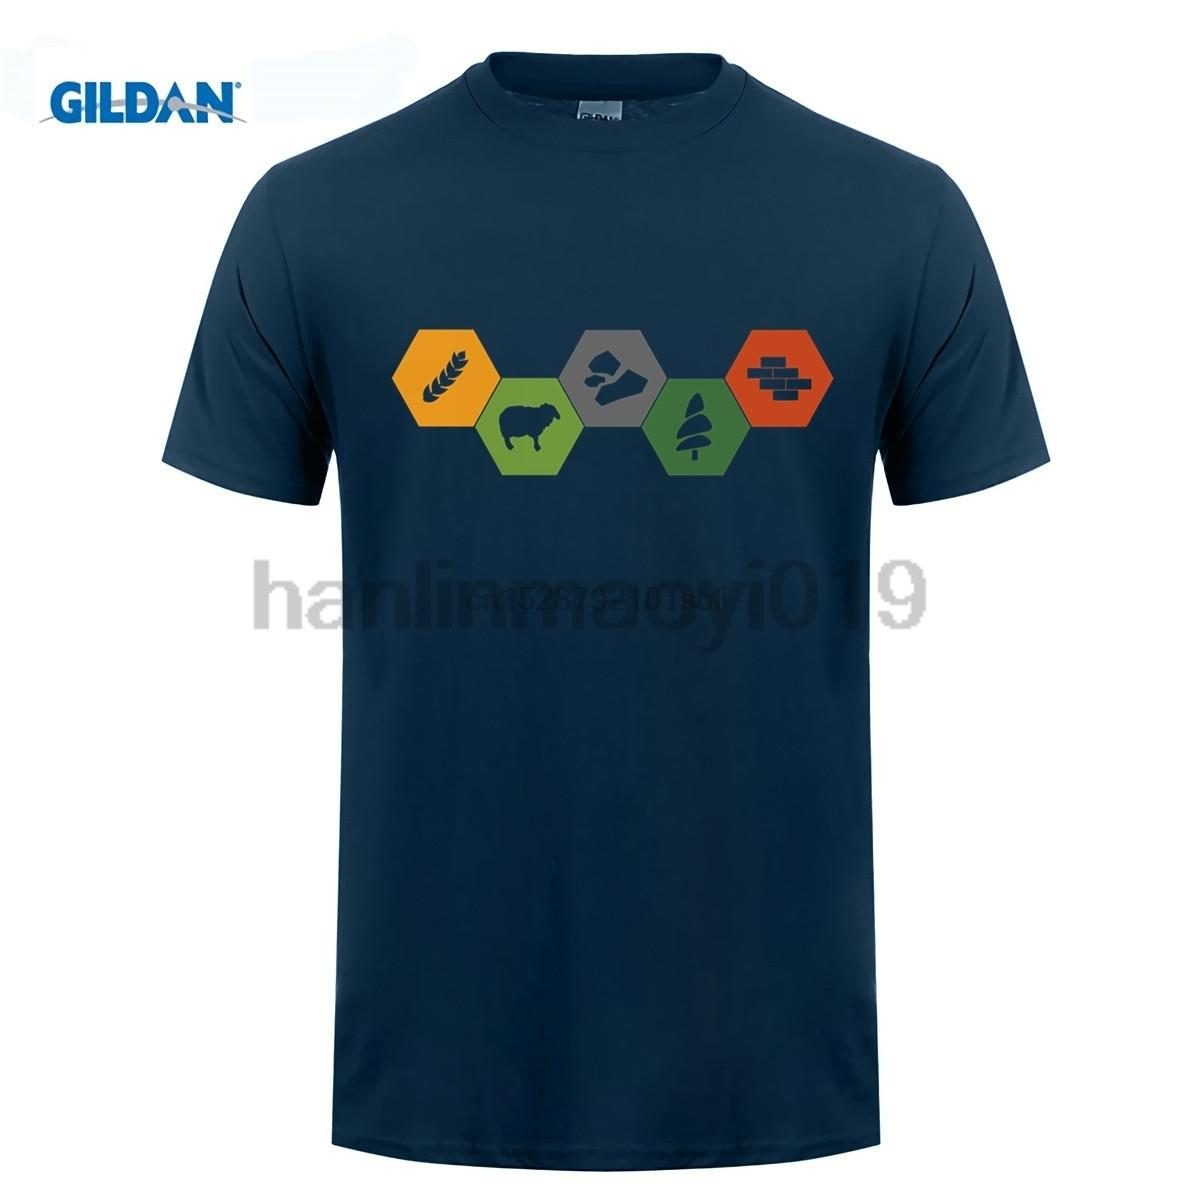 Colons de Catan Minimaliste couleur T-shirt